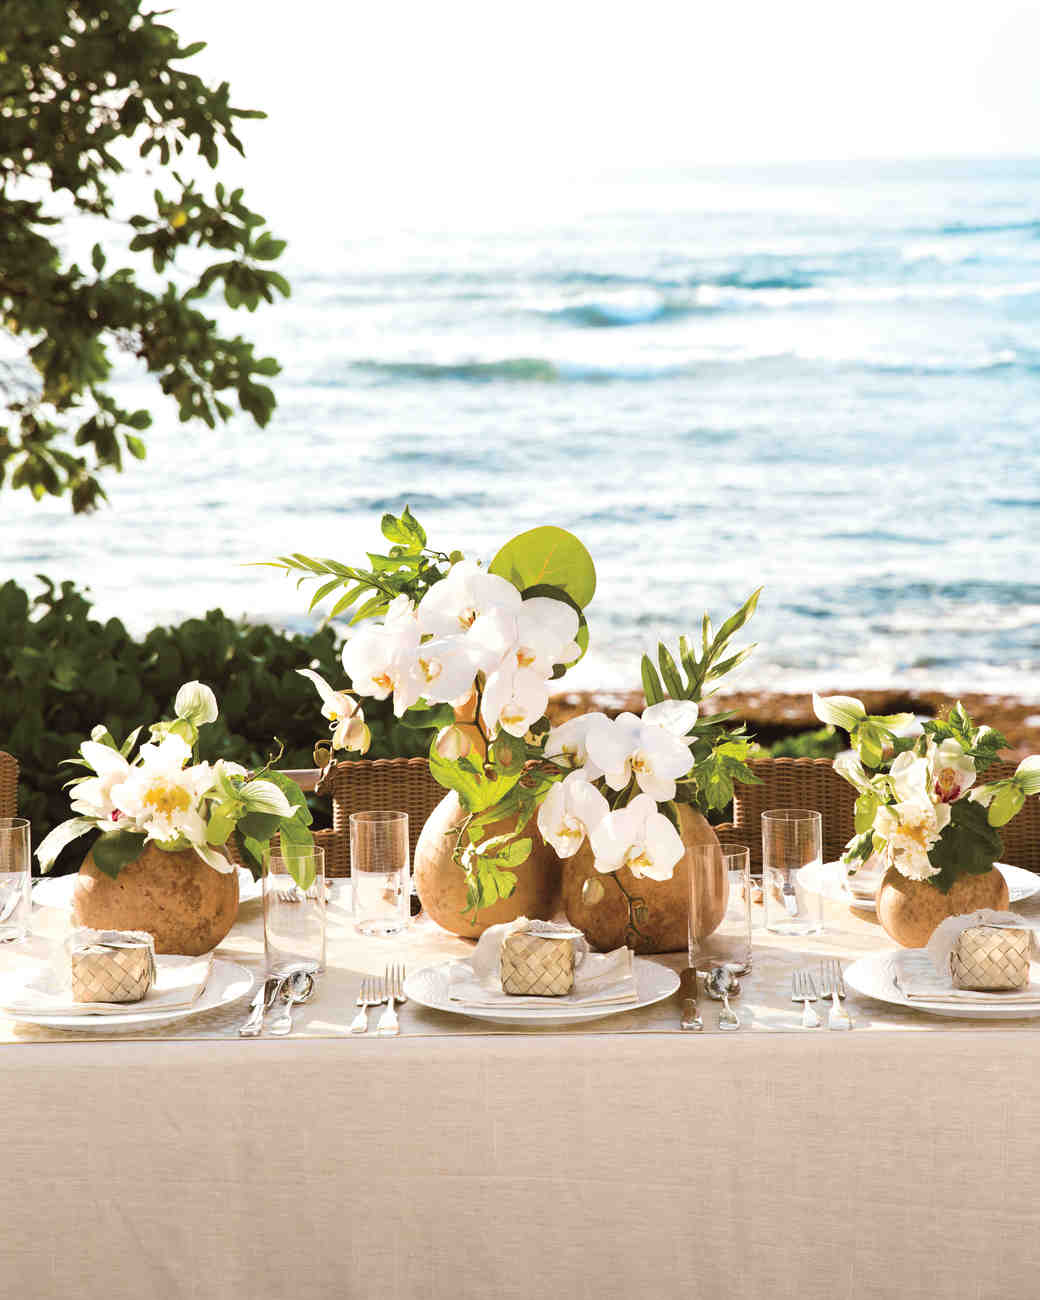 Hawaiian Themed Wedding Ideas: Island Time: 10 Ideas For Throwing A Tropical Wedding